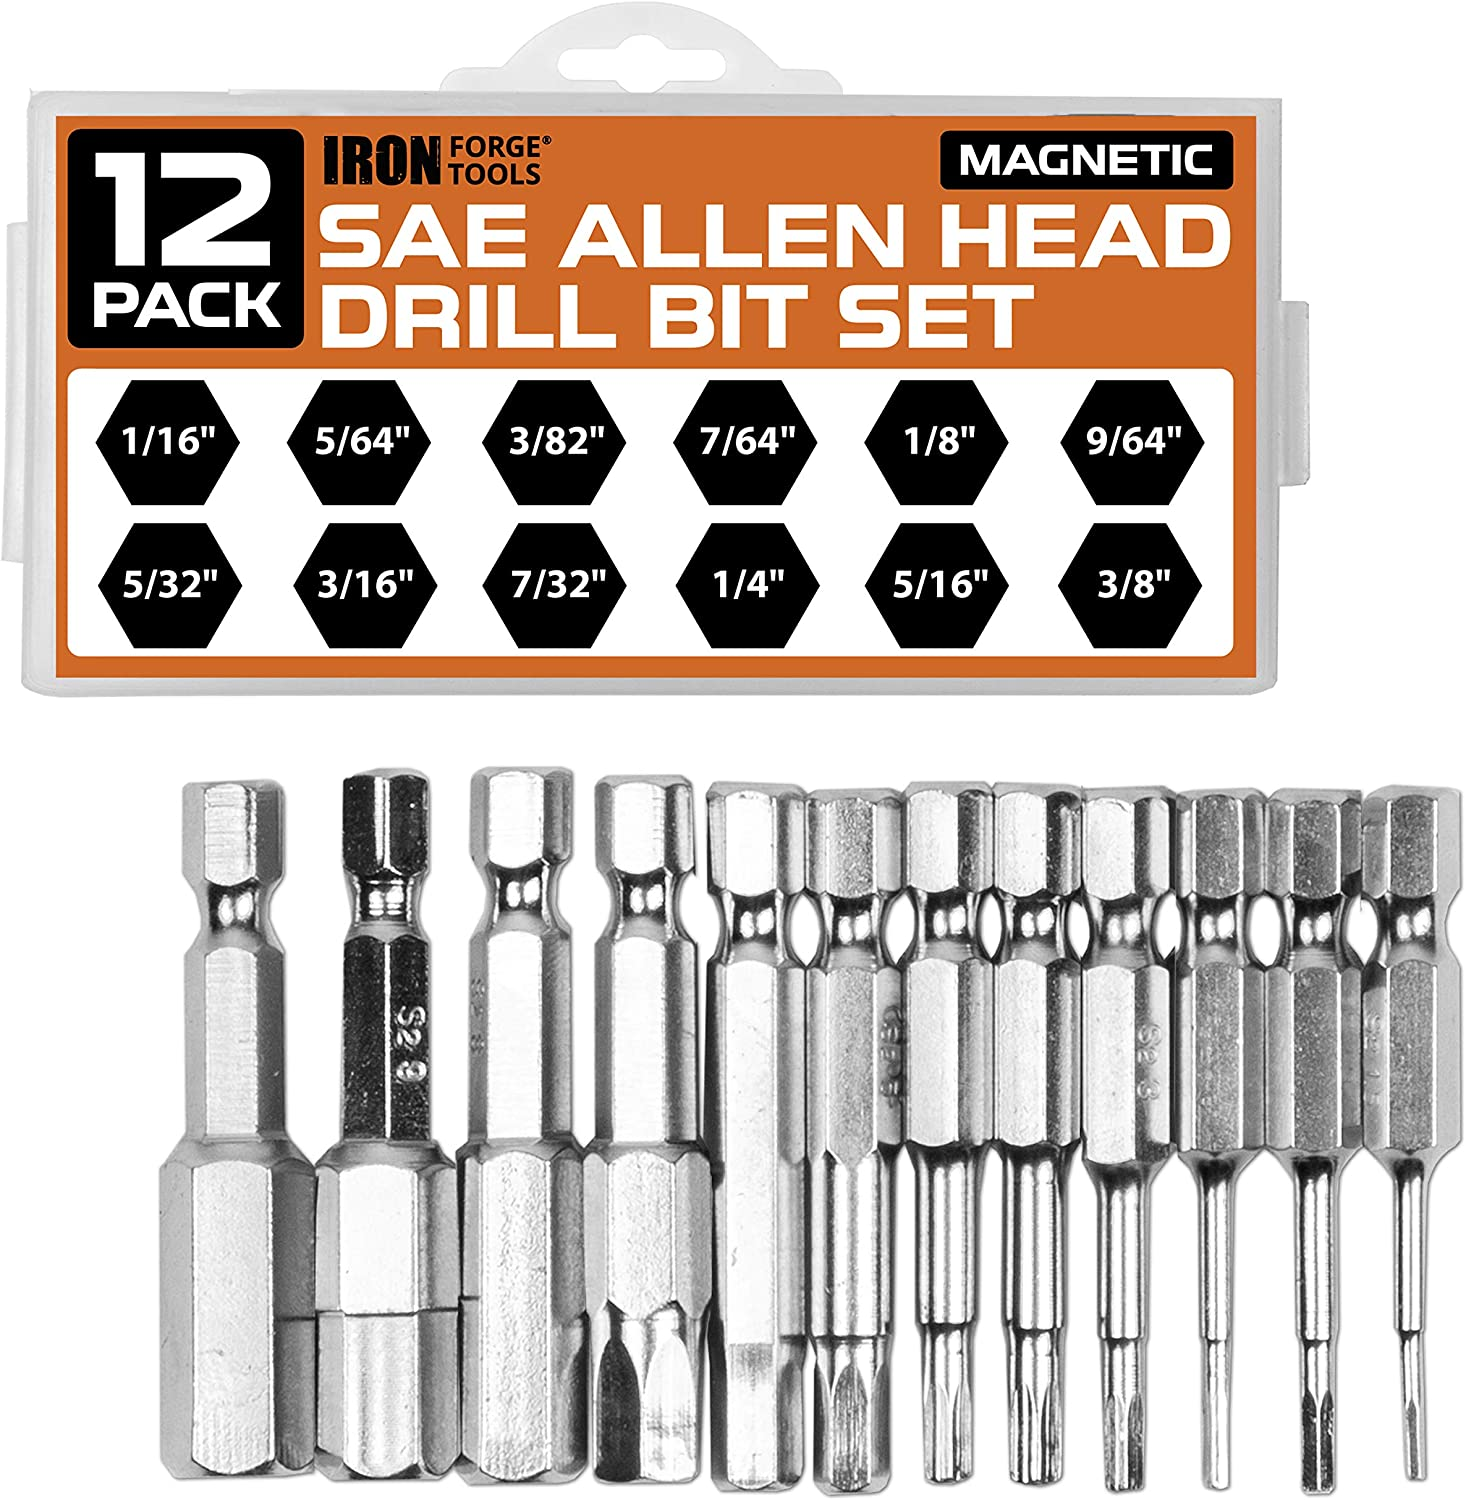 SAE Hex Head Bits with Magnetic Tips Allen Wrench Drill Bit Set of 12